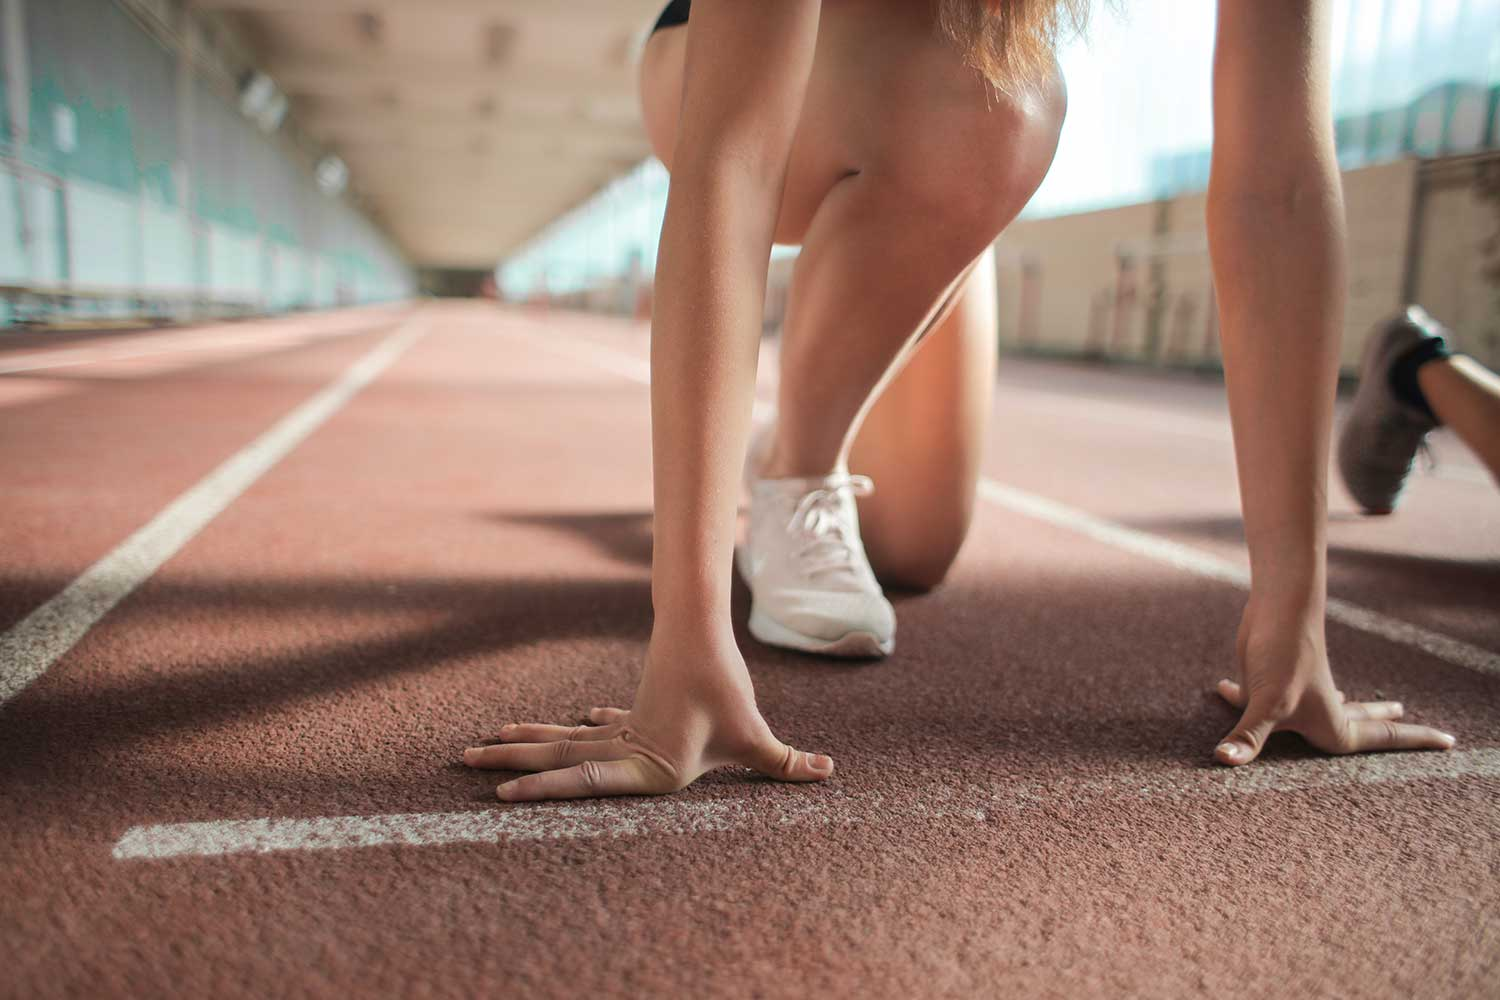 Closeup of woman kneeling down by starting line